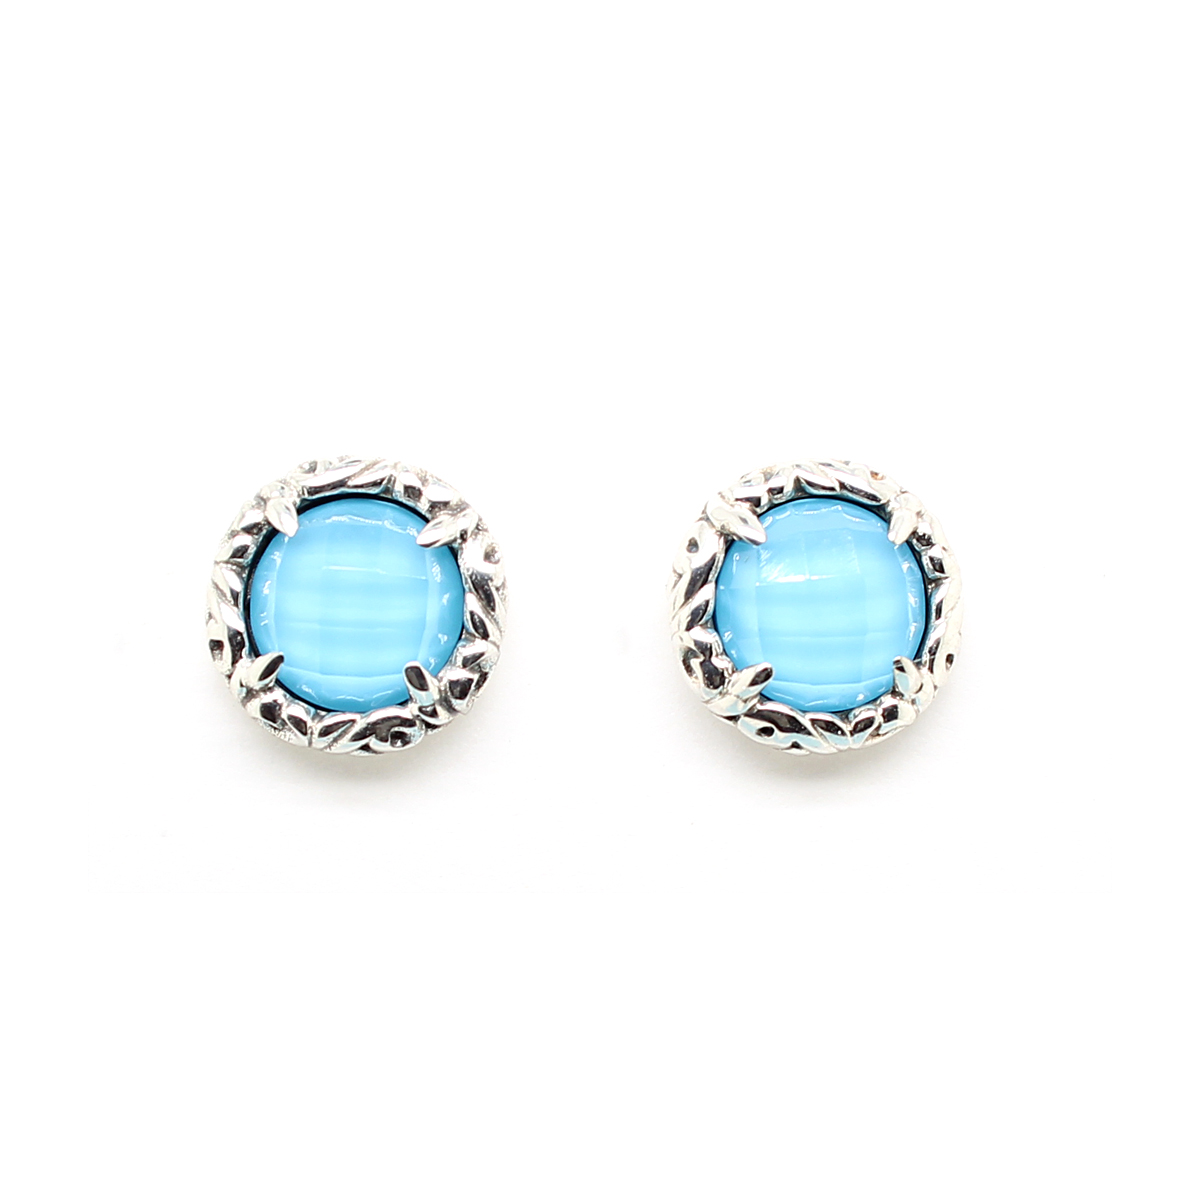 Charles Krypell Sterling Silver Turquoise and White Quartz Stud Earrings